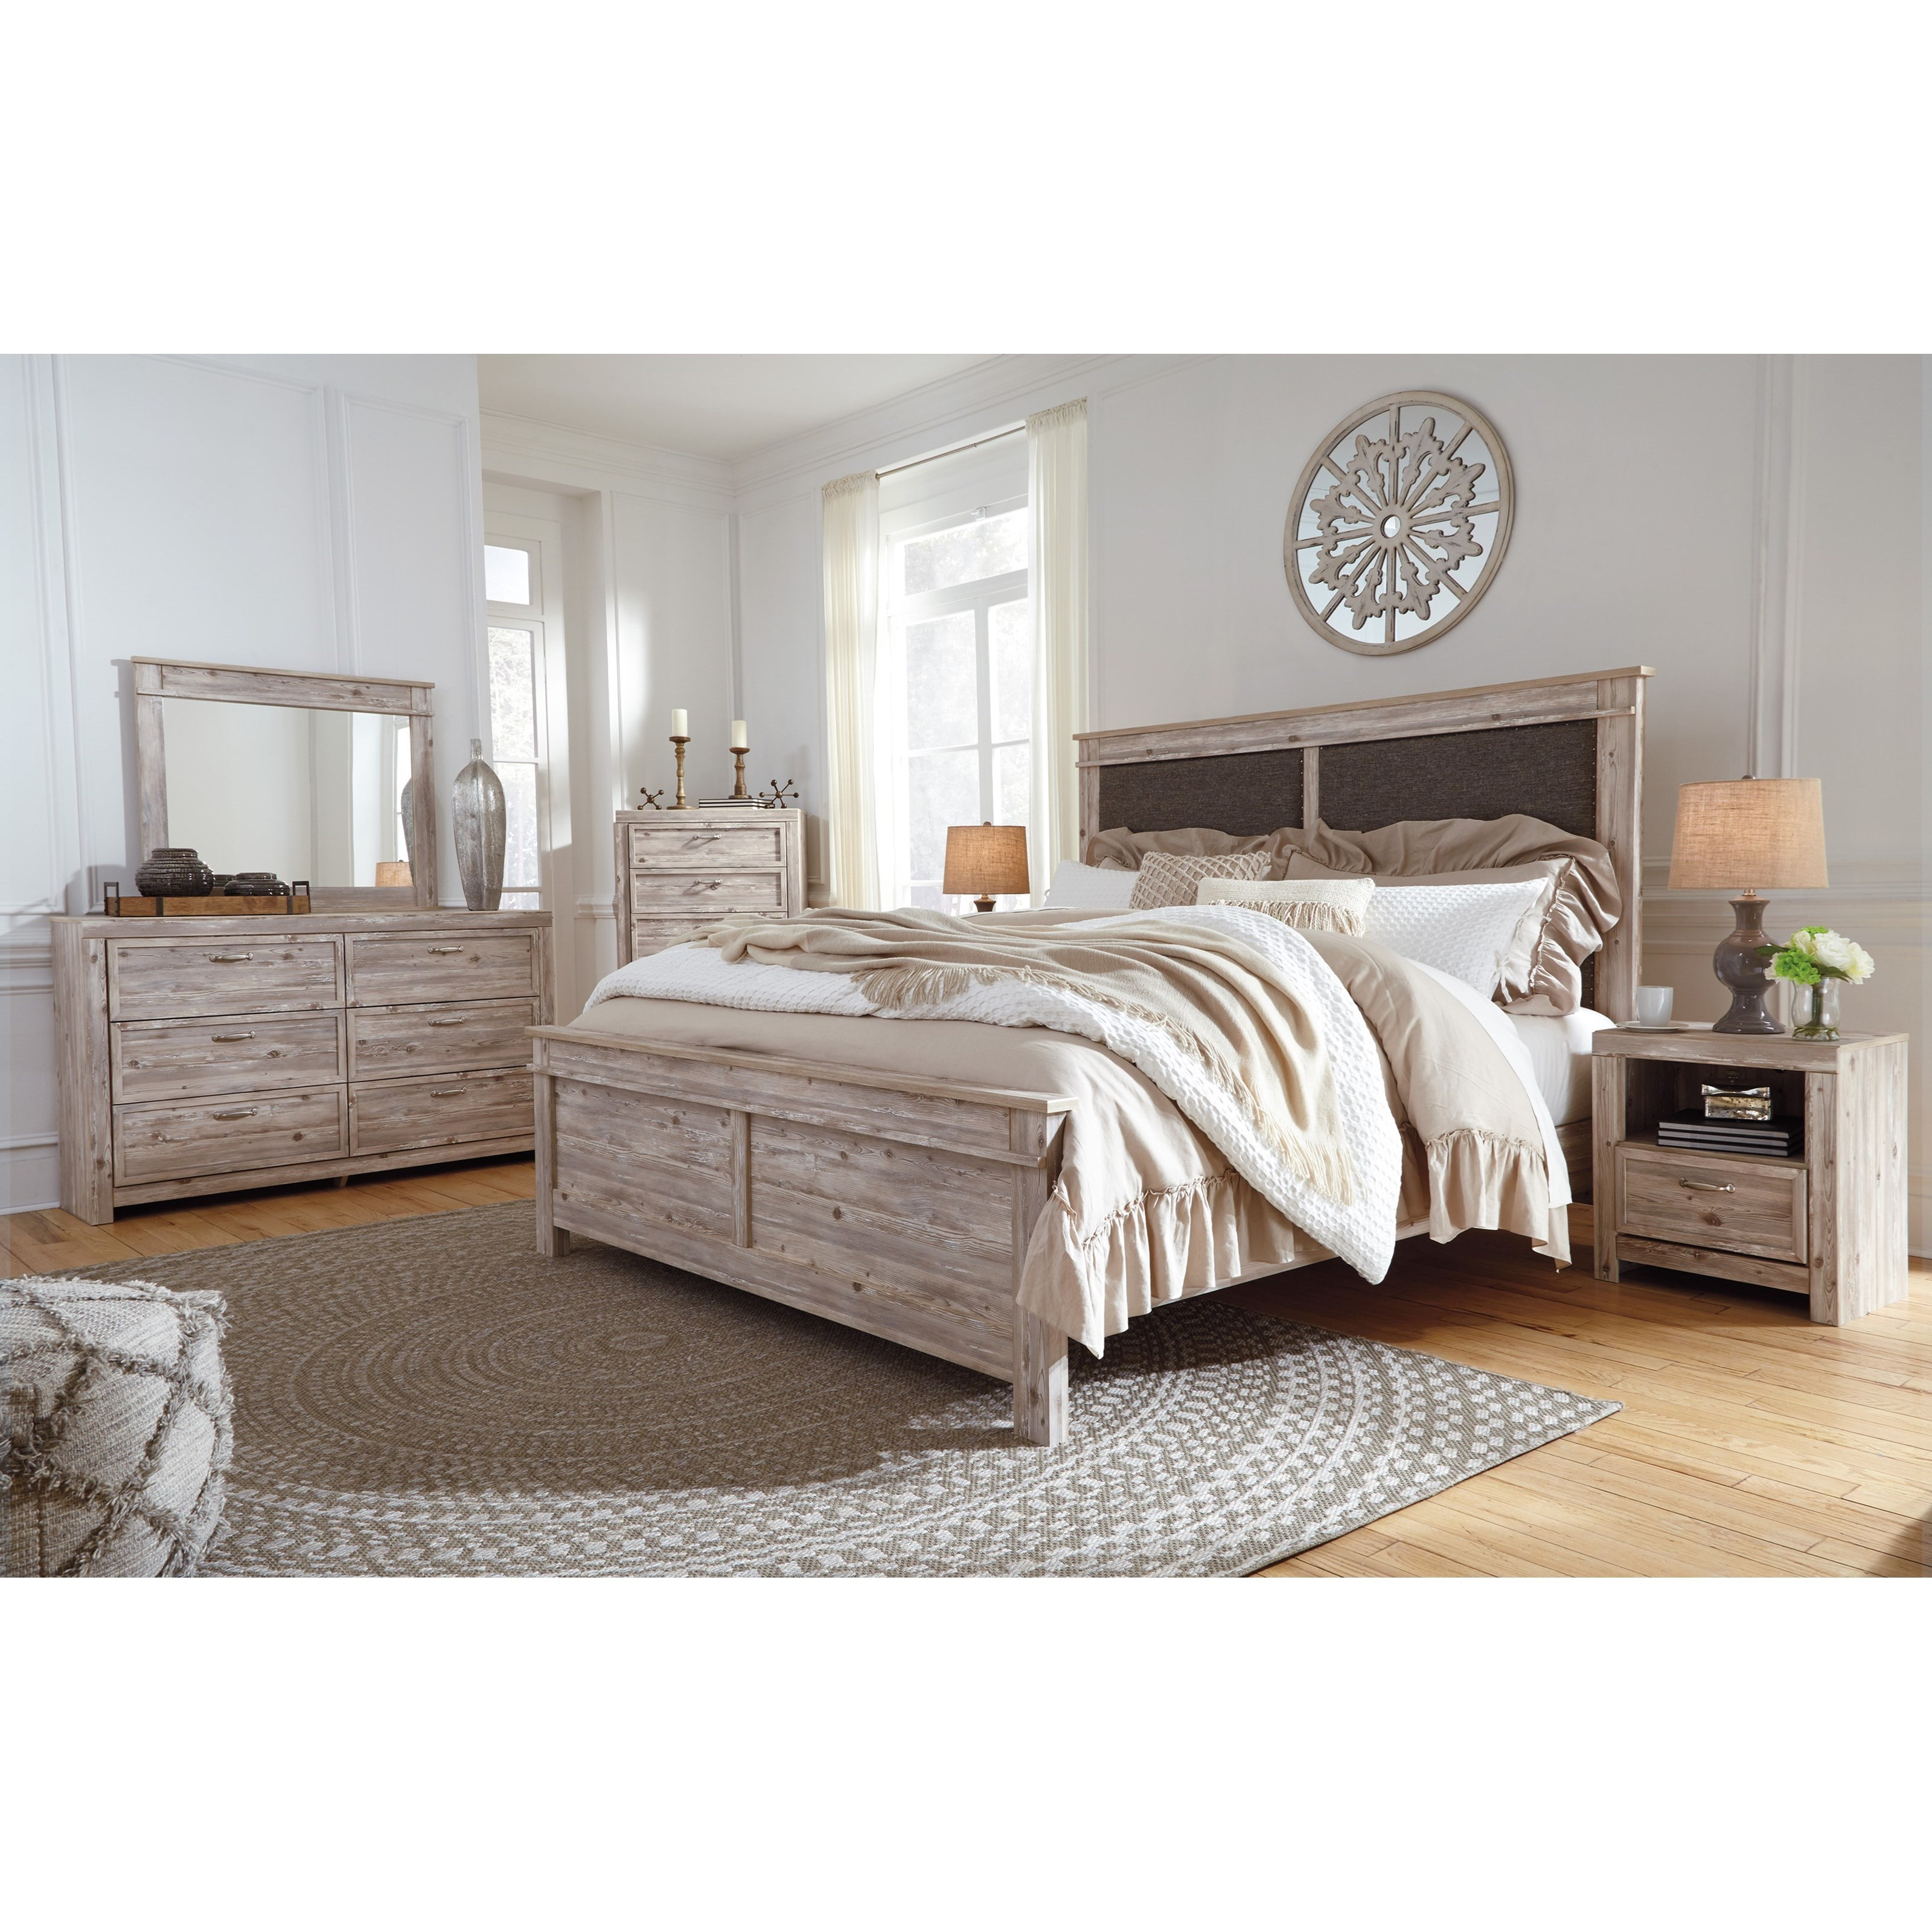 Benchcraft Willabry King Bedroom Group